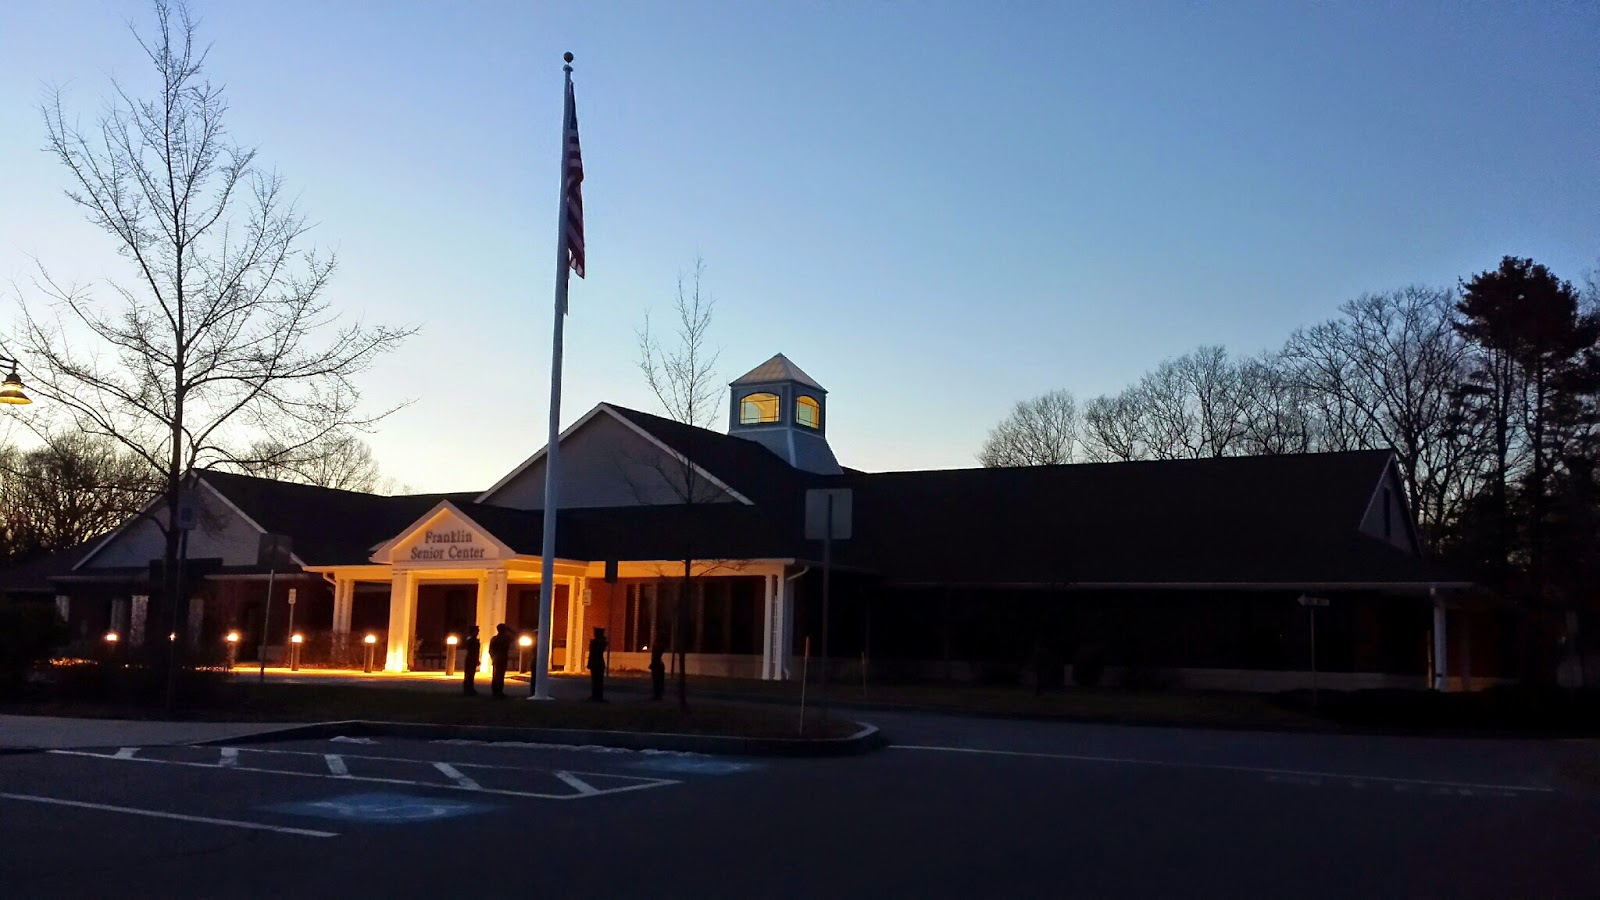 the Franklin Senior Center at night